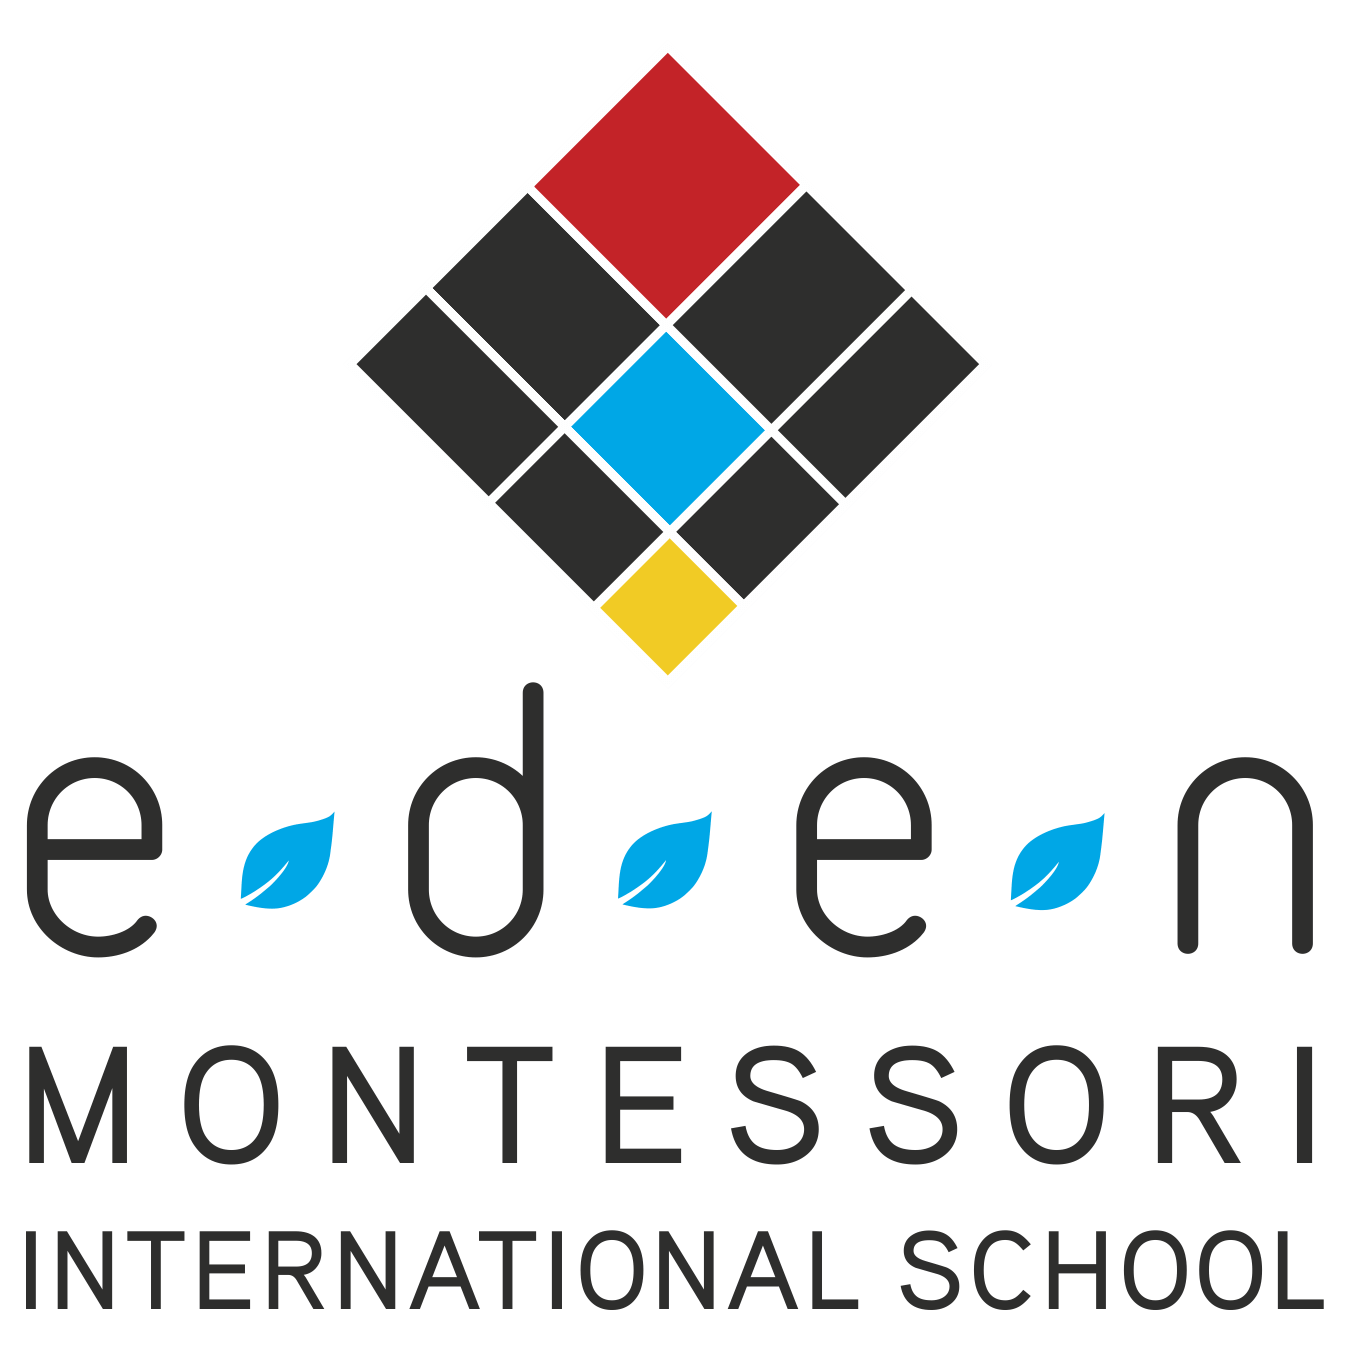 eden montessori international school